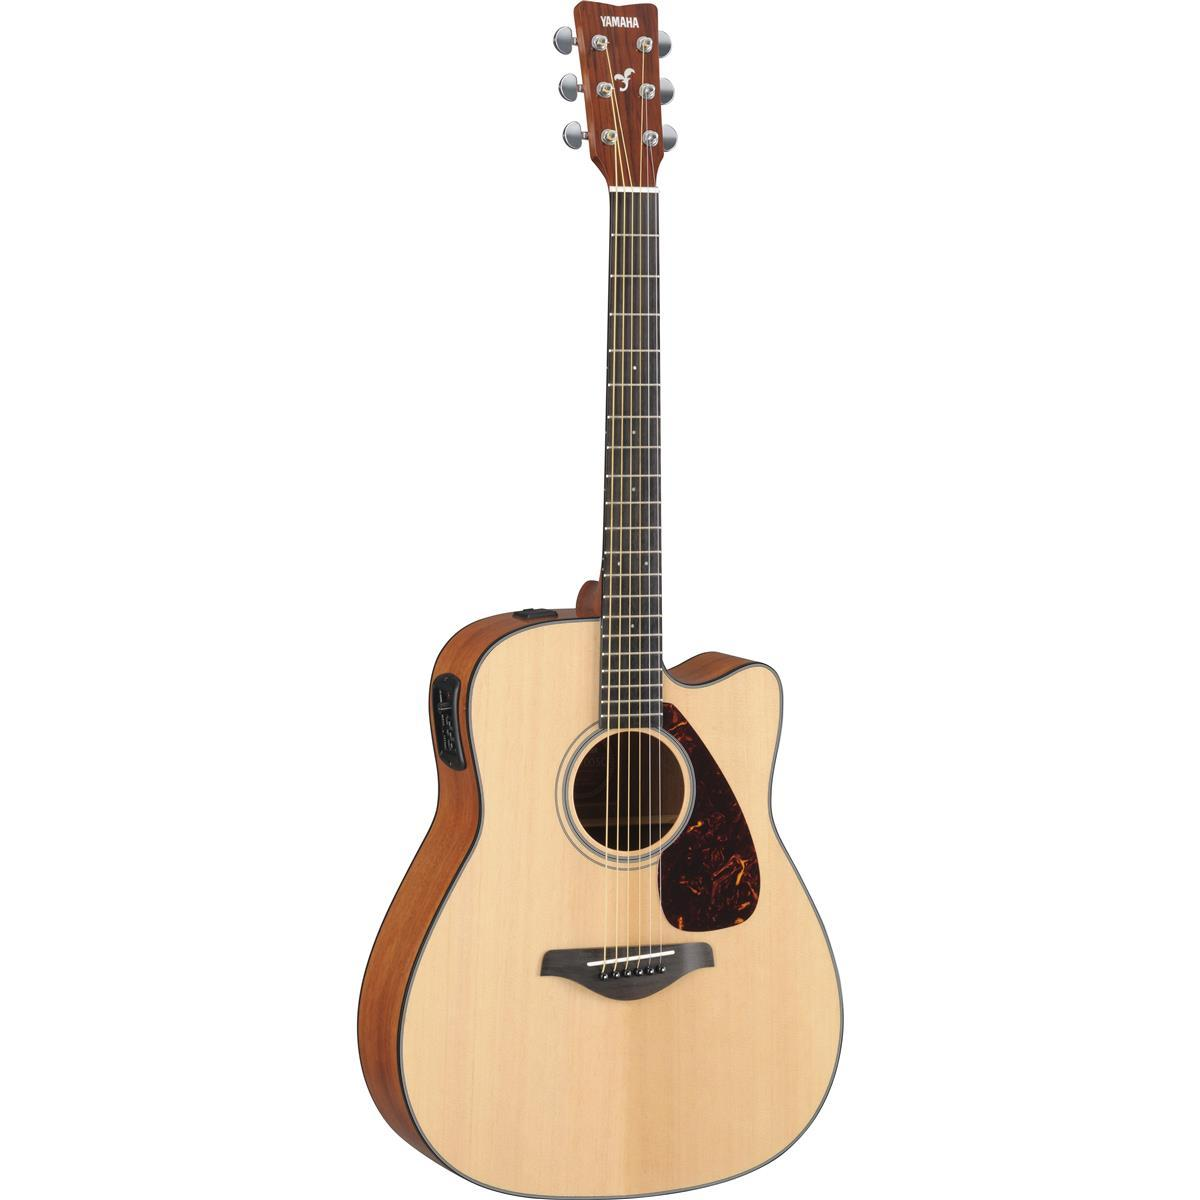 Yamaha FGX700SC 6 String Solid Top Cutaway Acoustic-Electric Guitar